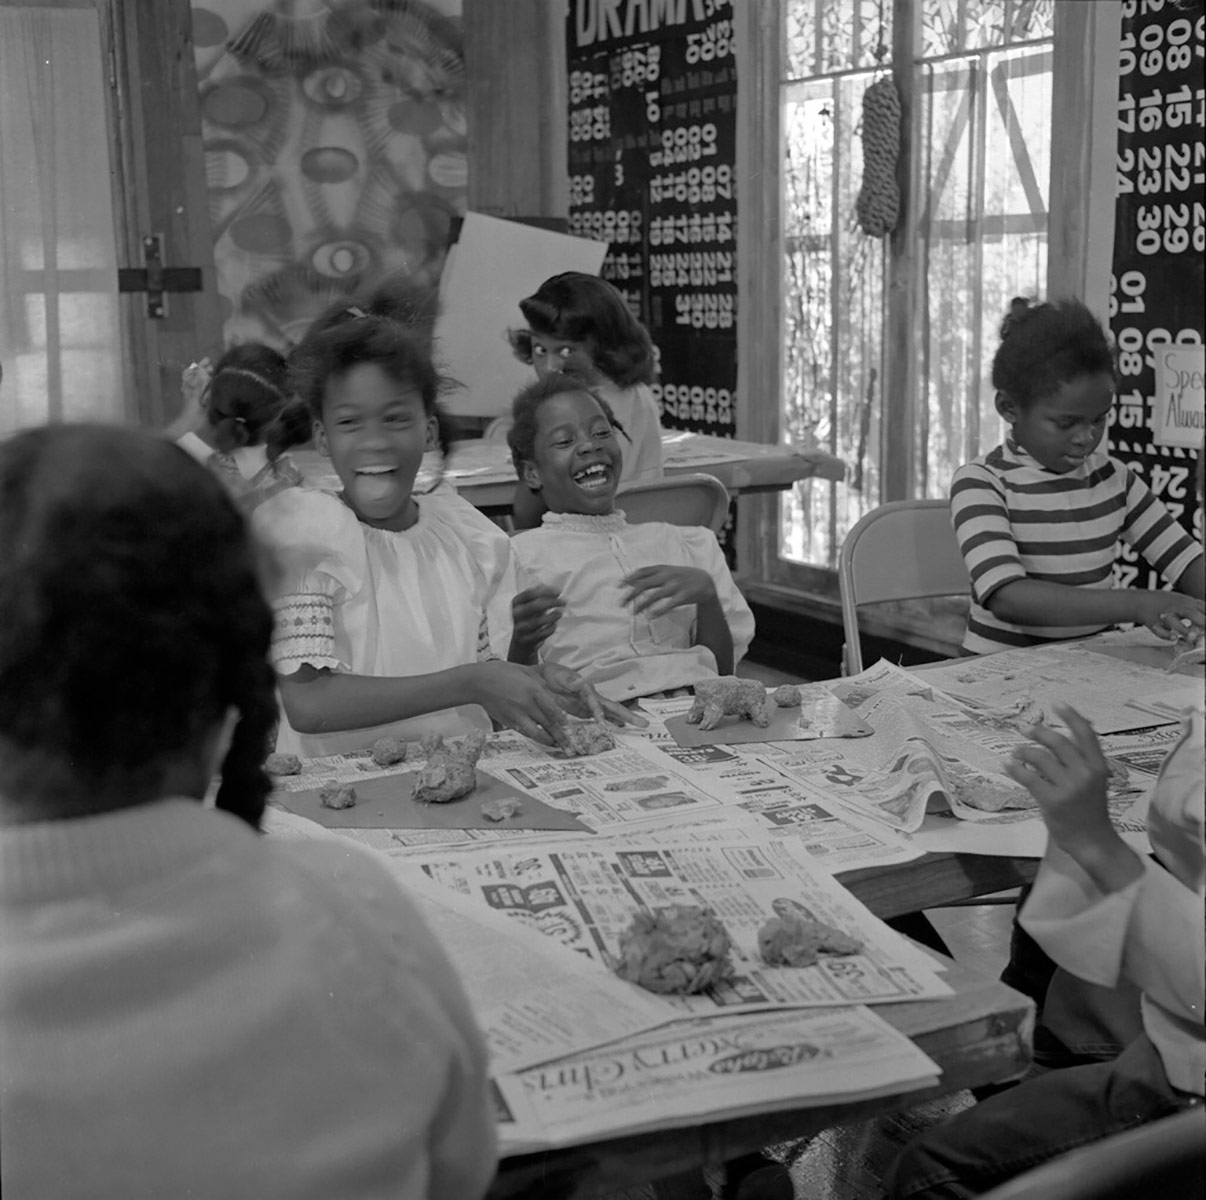 Students enjoyed a variety of art making activities at the Happening House. | Willie Ford, Jr. and the Compton Communicative Arts Academy Collection, Special Collections and Archives, John F. Kennedy Memorial Library, California State University, L.A.